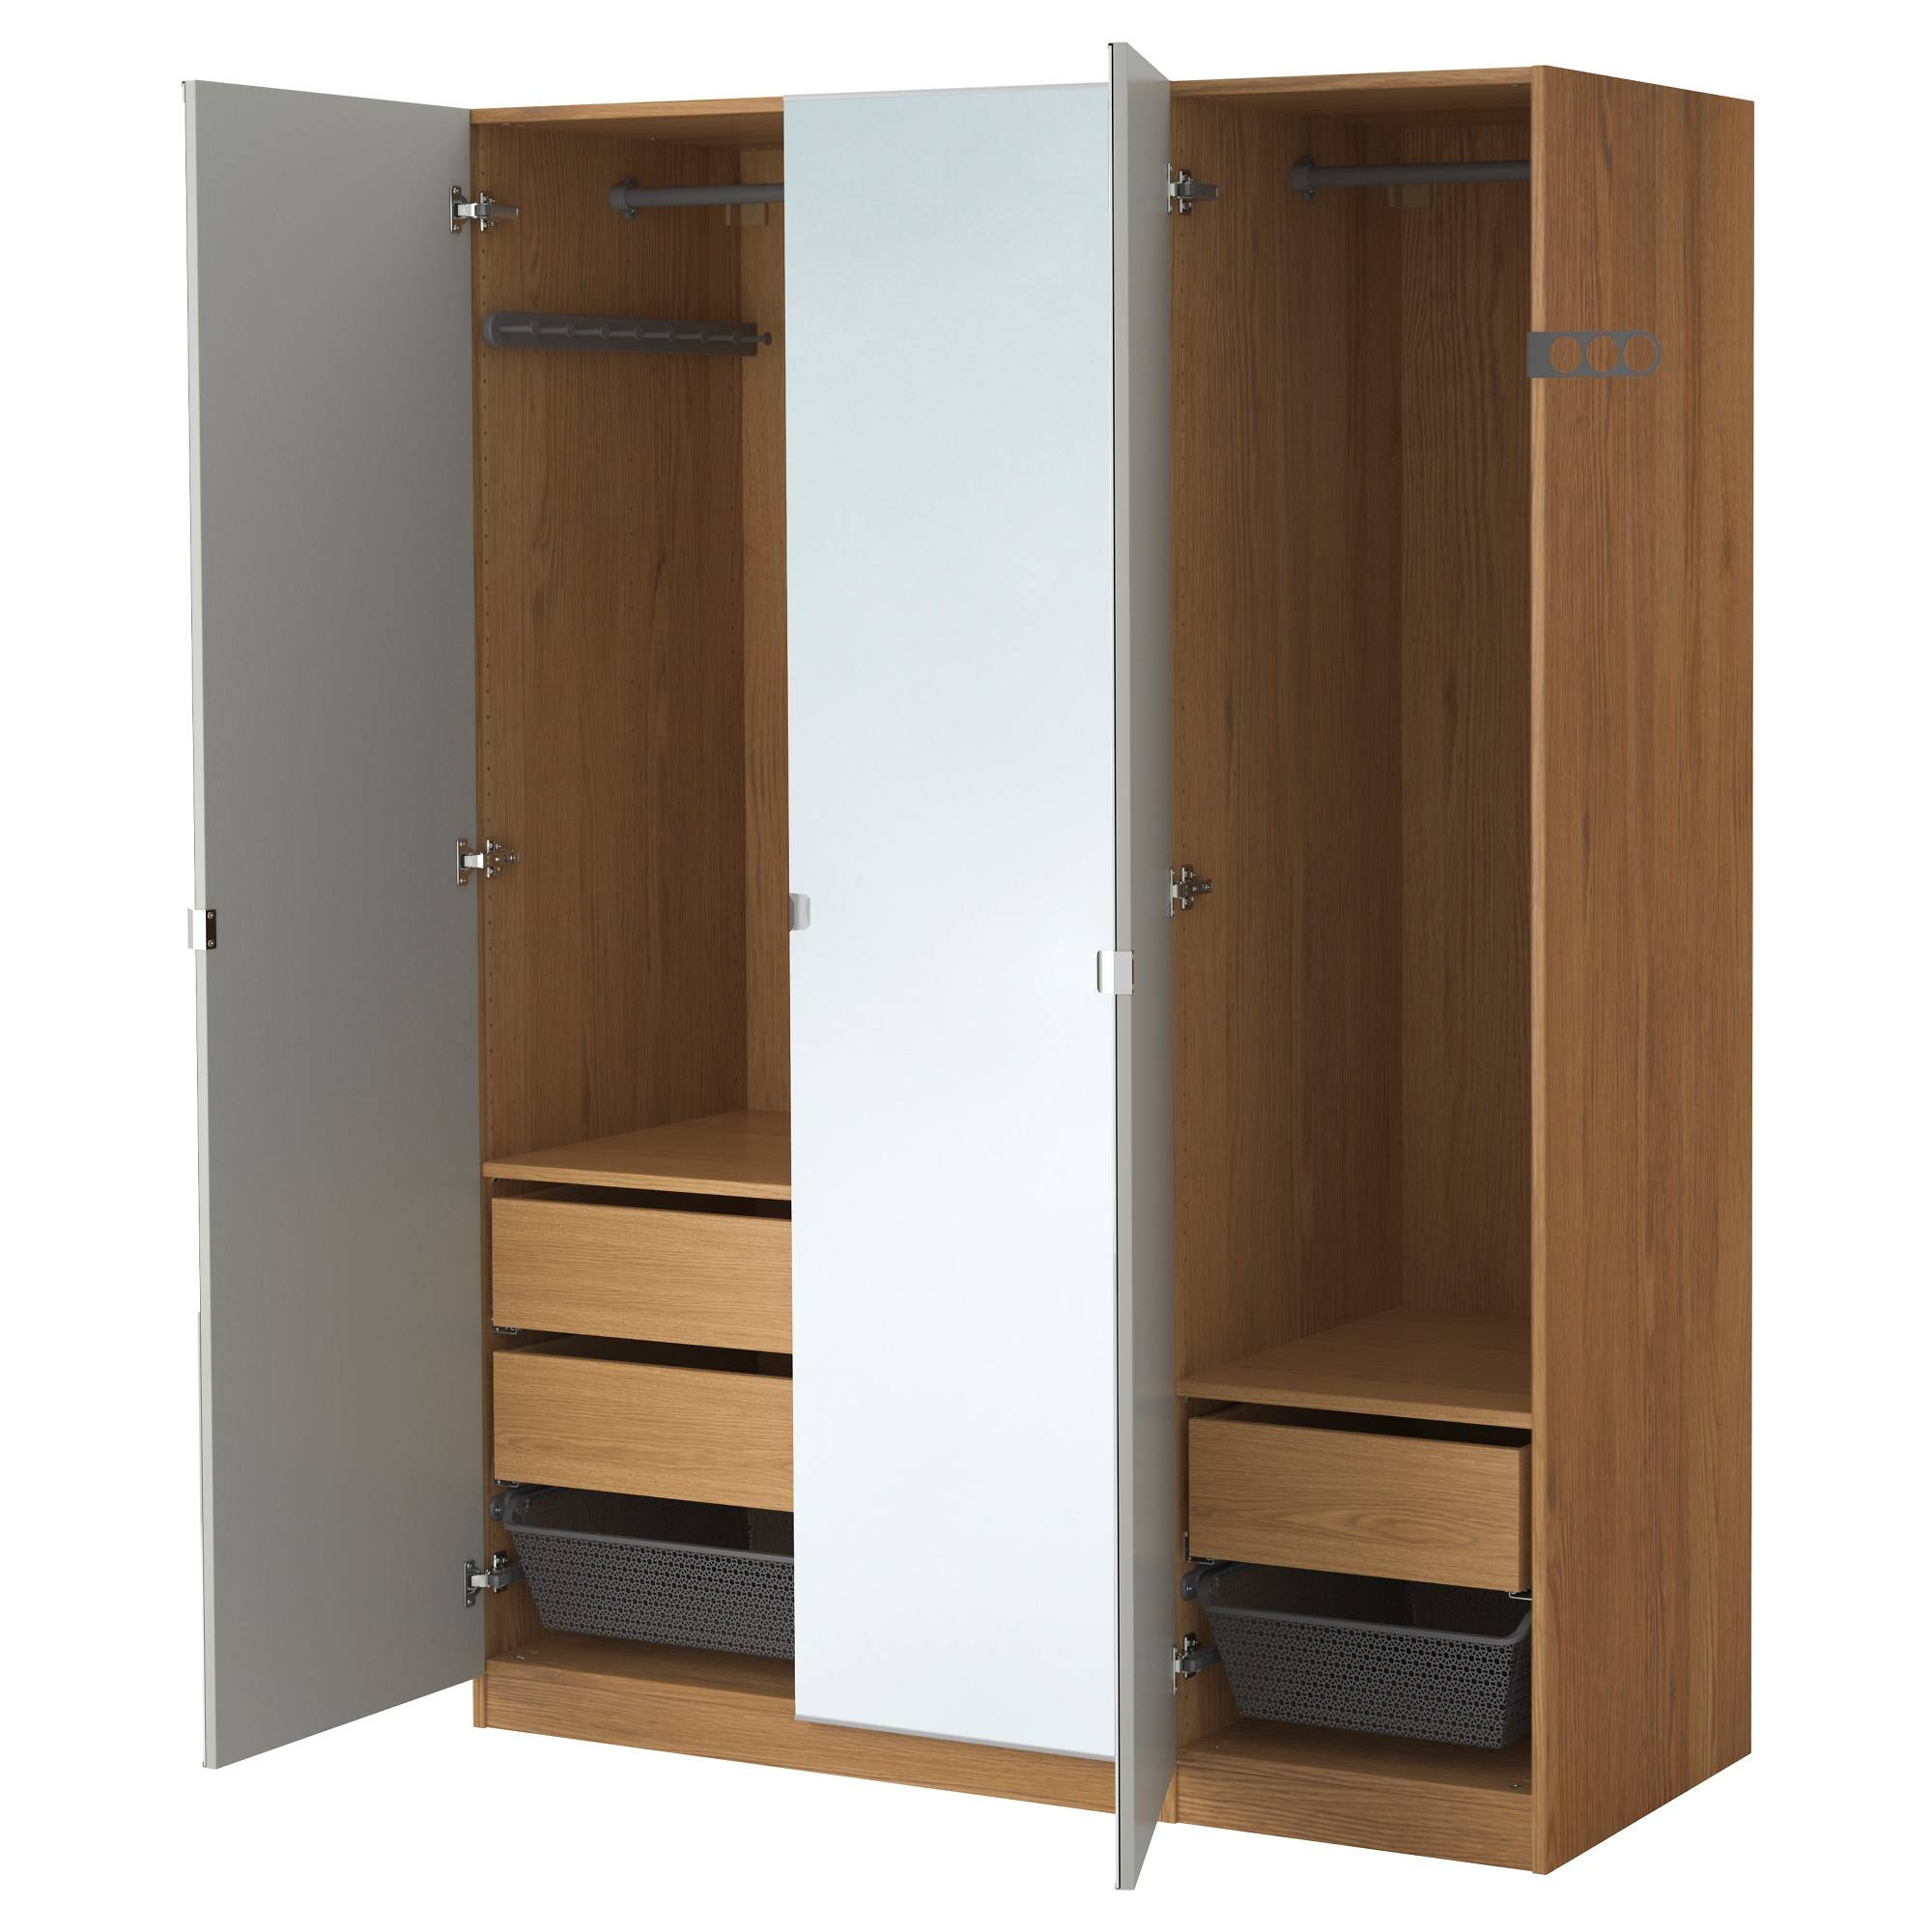 Wardrobes | Ikea pertaining to 4 Door Wardrobes With Mirror And Drawers (Image 15 of 15)